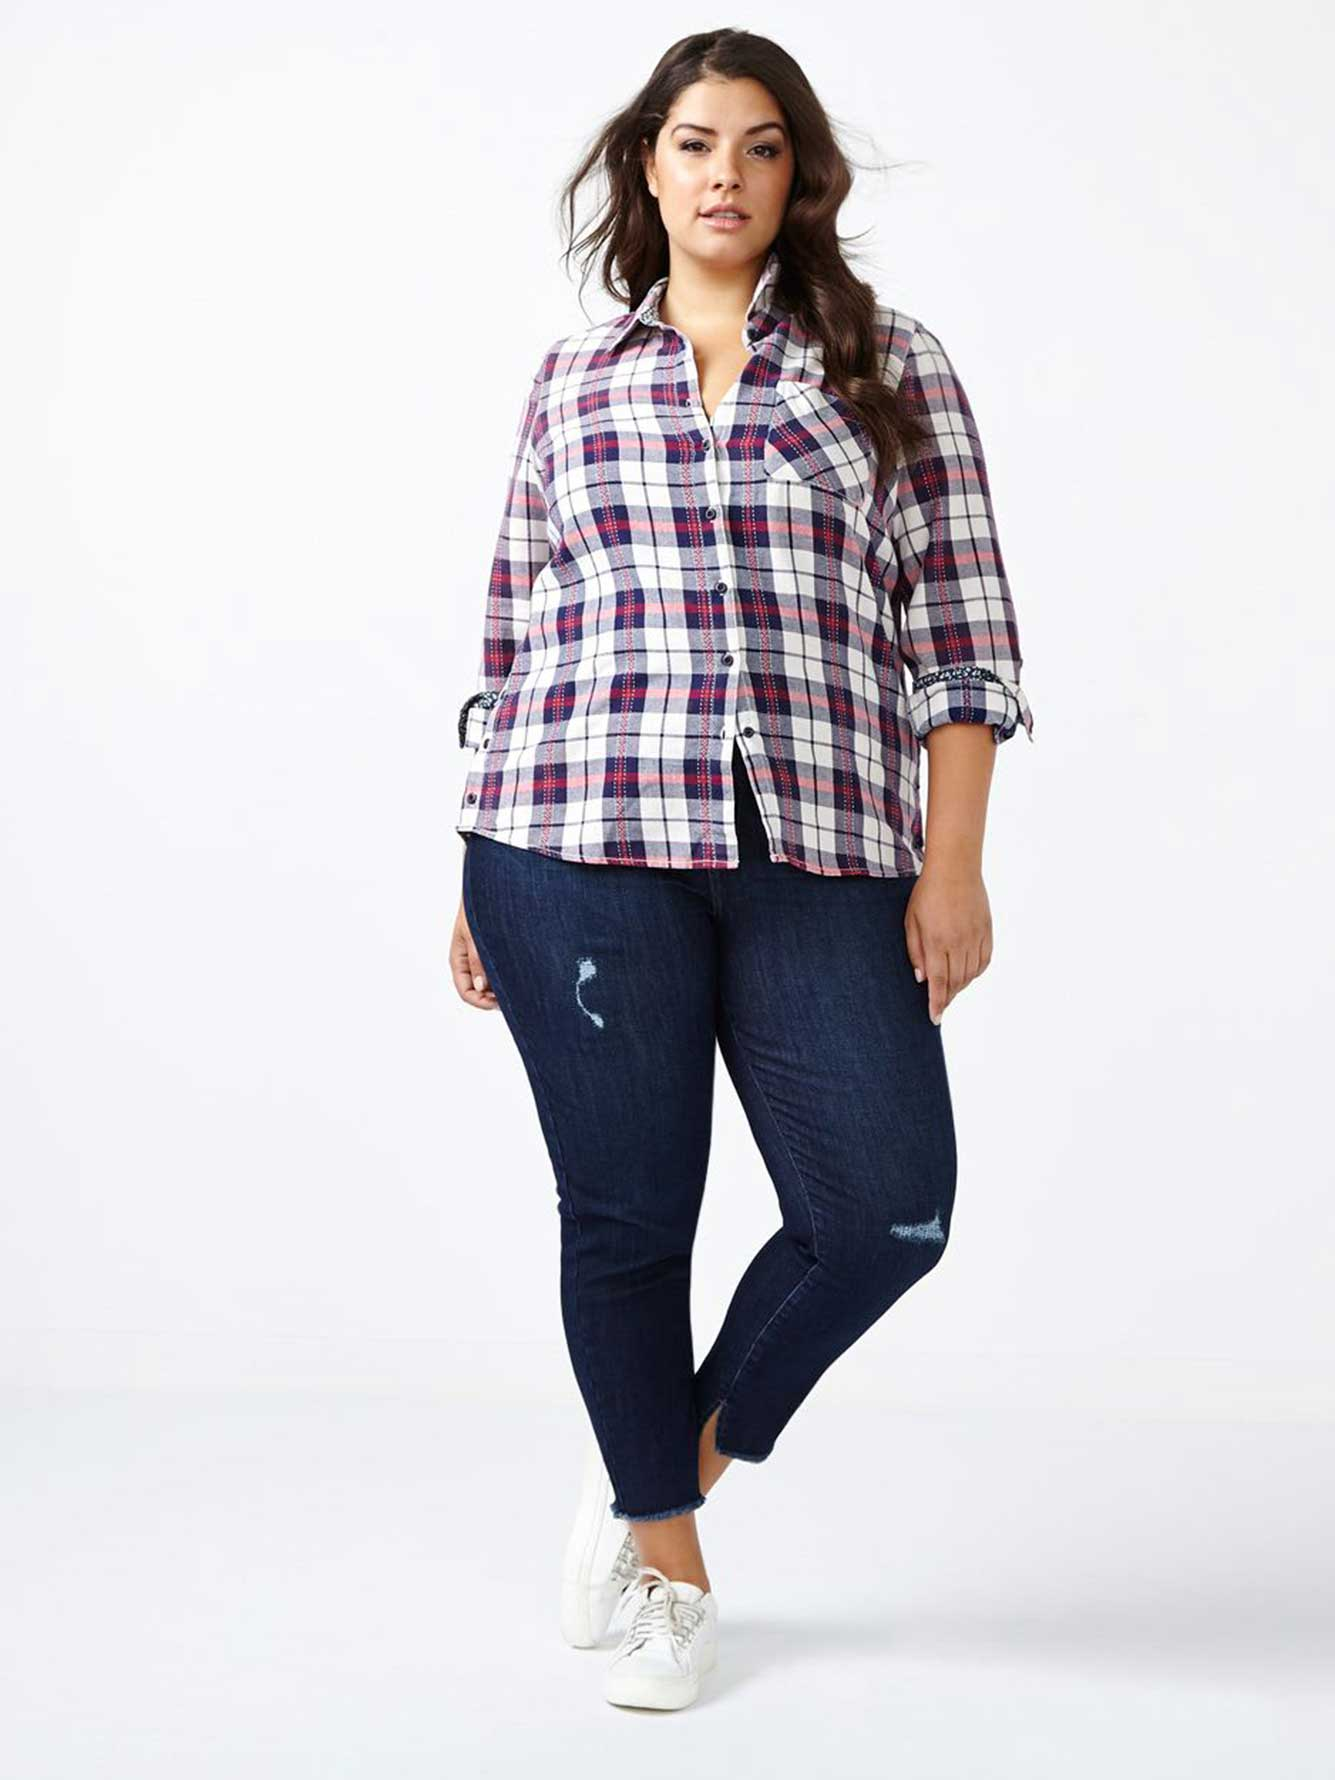 What to wear with plaid shirt and jeans — photo 1